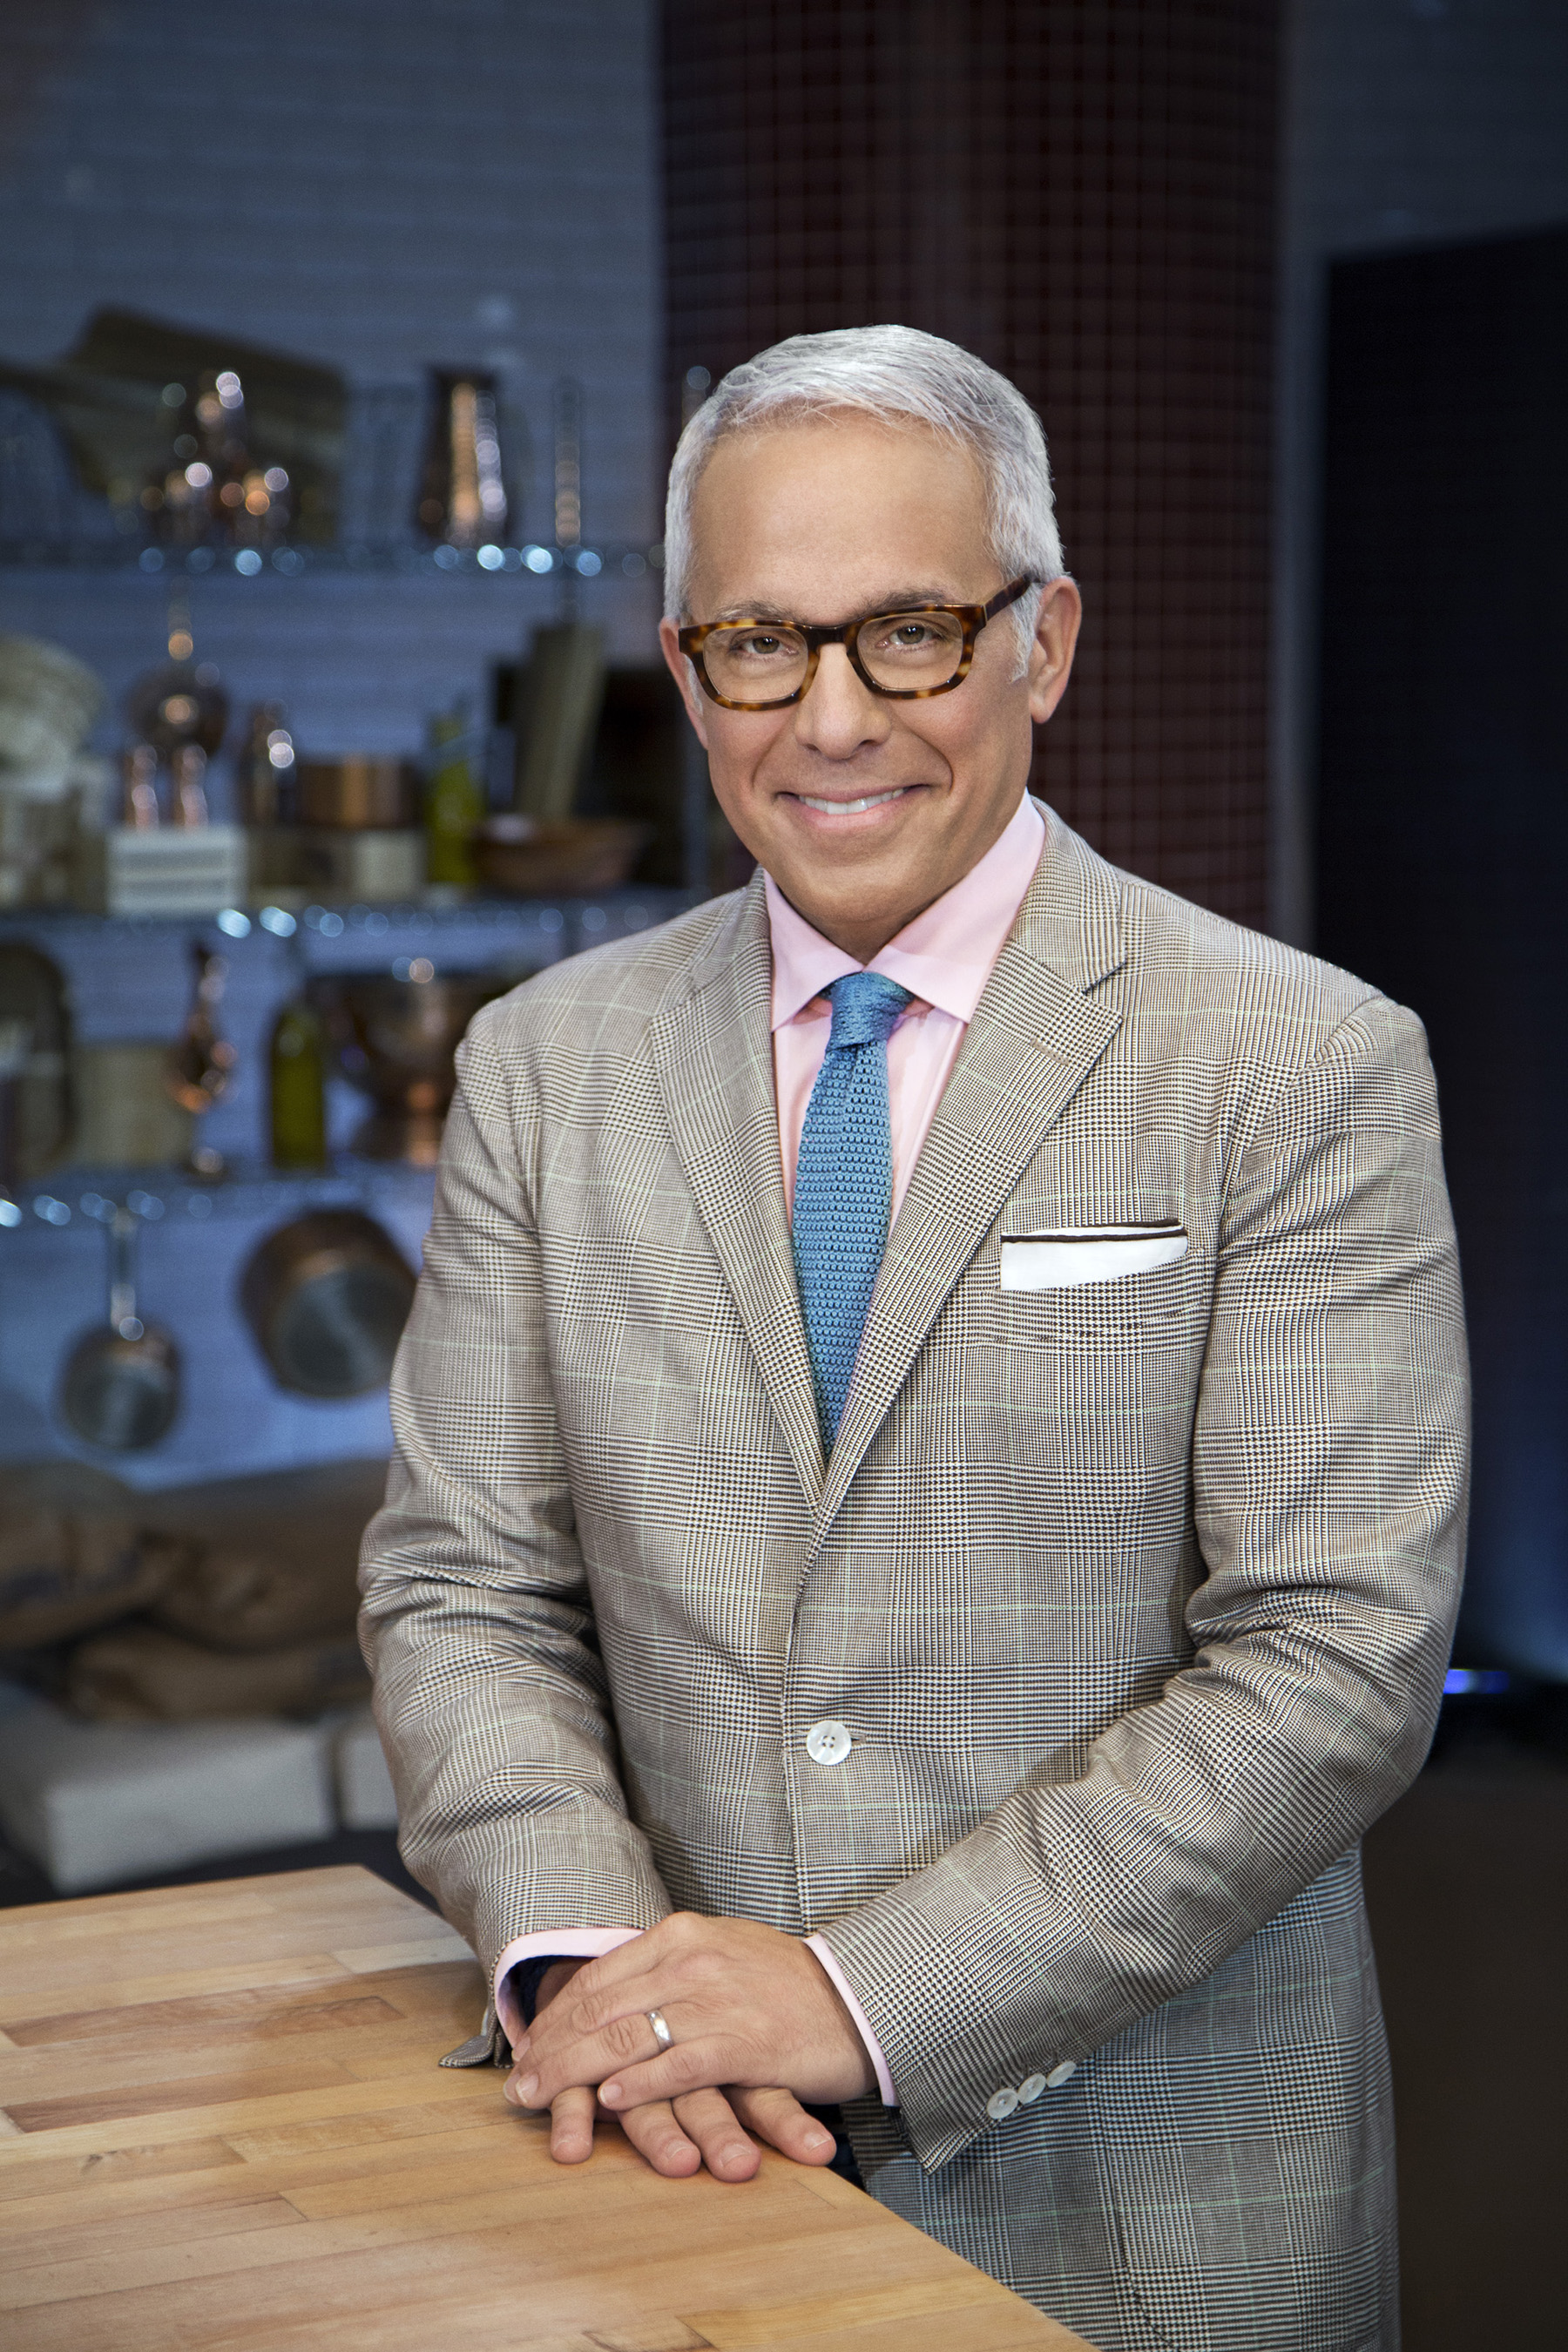 Host Geoffrey Zakarian on Food Network's Cooks vs. Cons